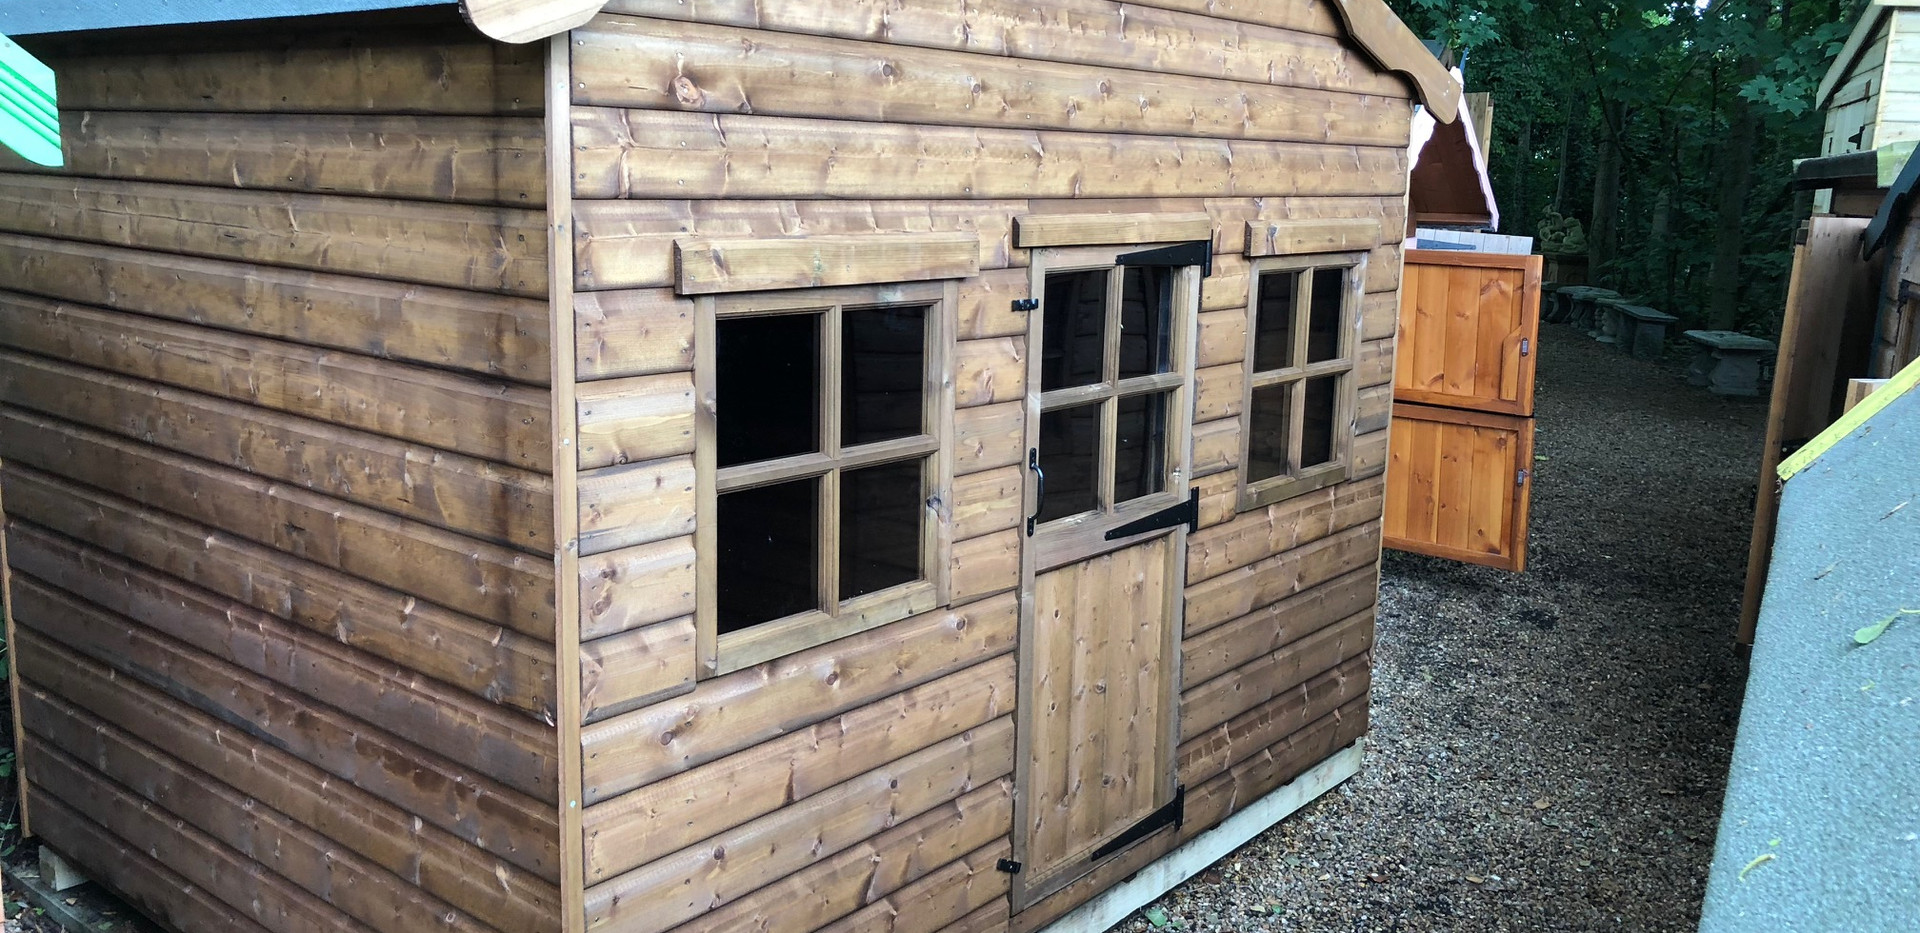 Topwood Shopkeepers Cabin 1-storey Playhouse